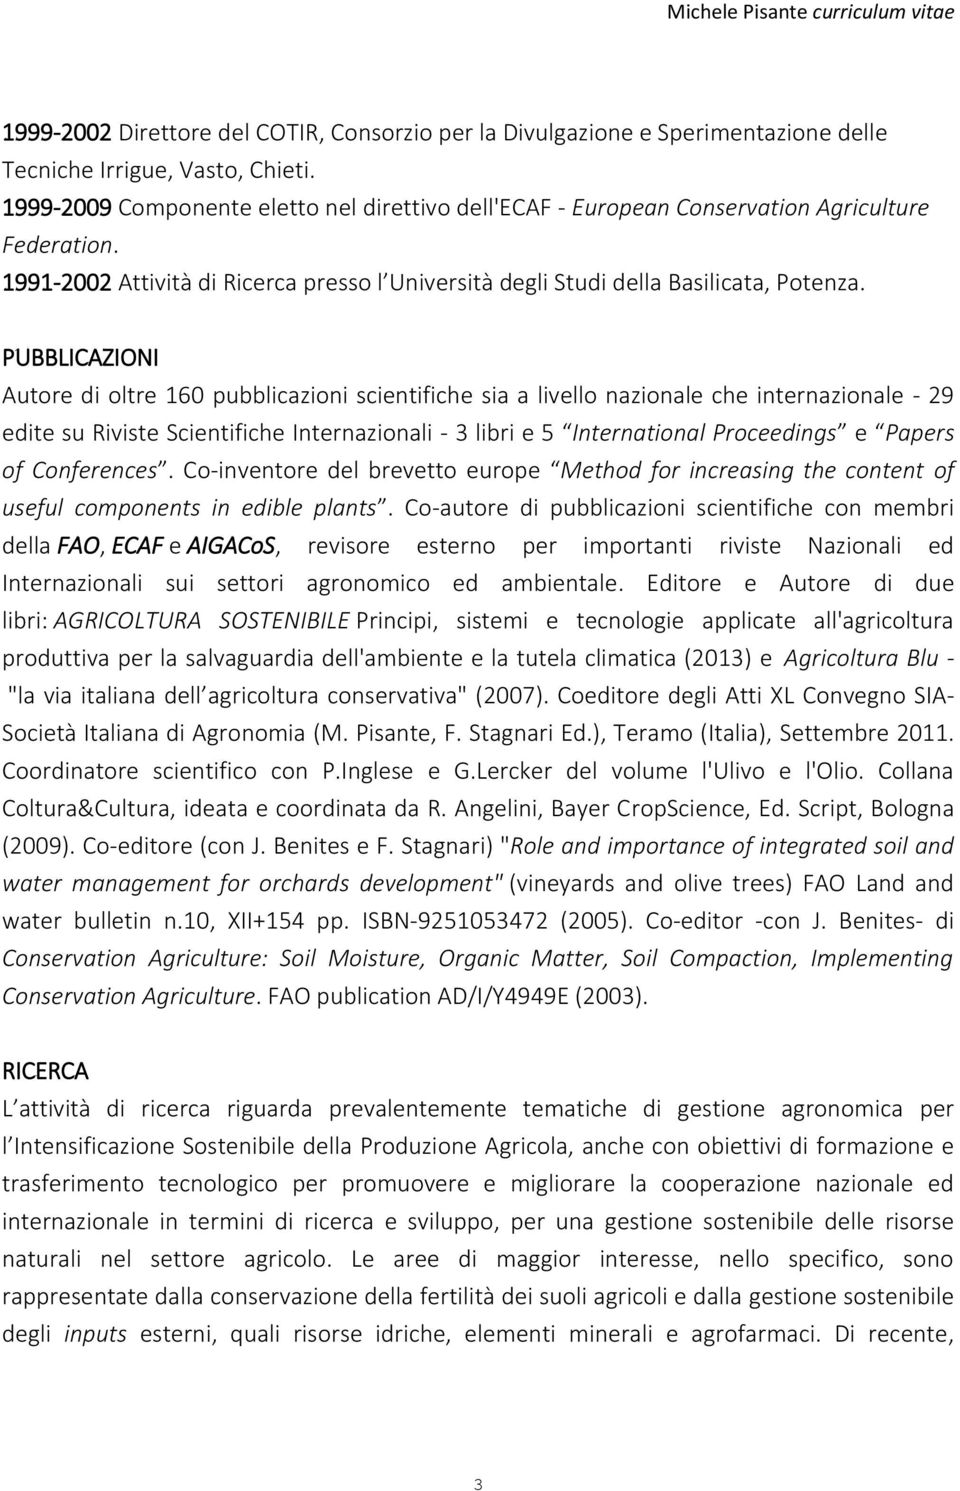 PUBBLICAZIONI Autore di oltre 160 pubblicazioni scientifiche sia a livello nazionale che internazionale - 29 edite su Riviste Scientifiche Internazionali - 3 libri e 5 International Proceedings e